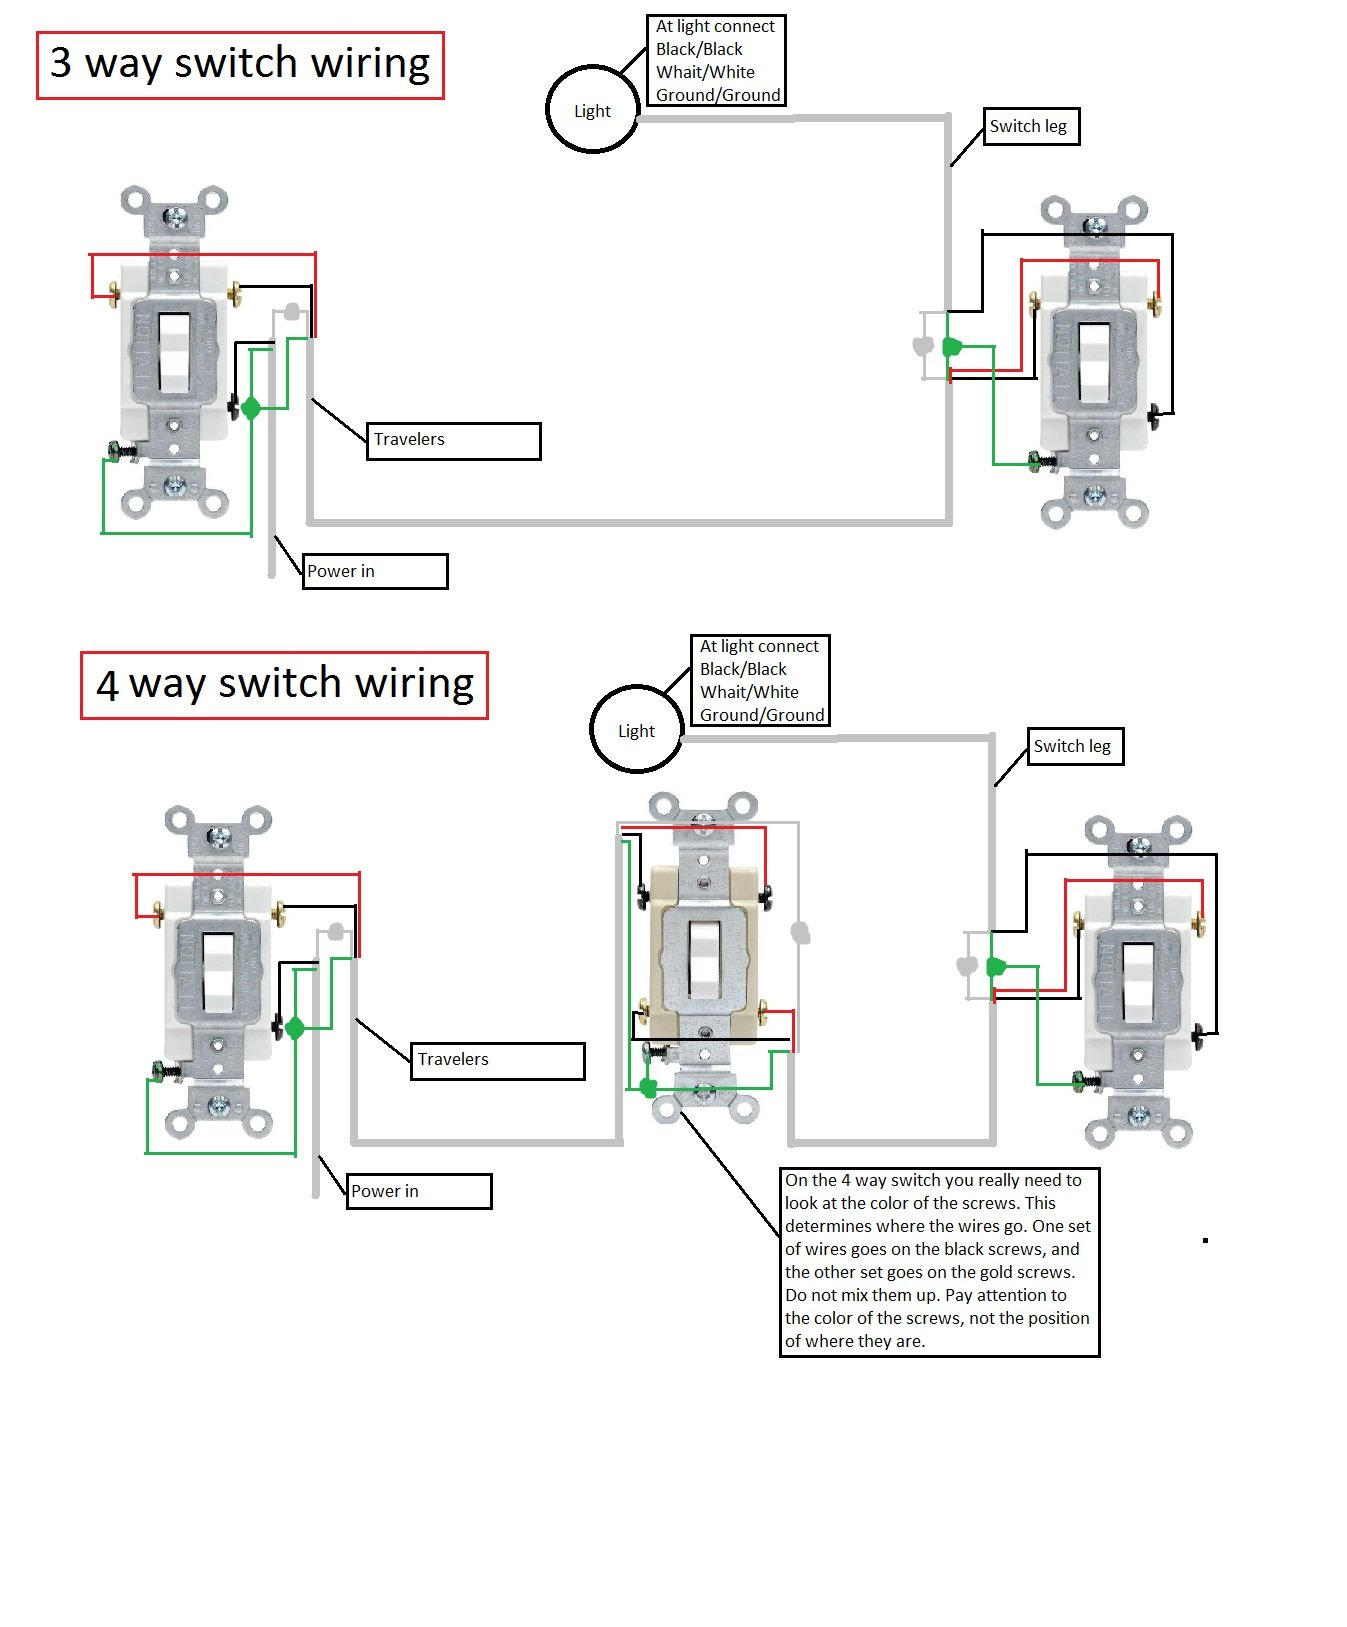 Go Light Wiring Diagram Rubbermount Efi Black Beauty Vintage 4 Way Switch Trailer Lights Led Annavernon A 2 Nz Solidfonts